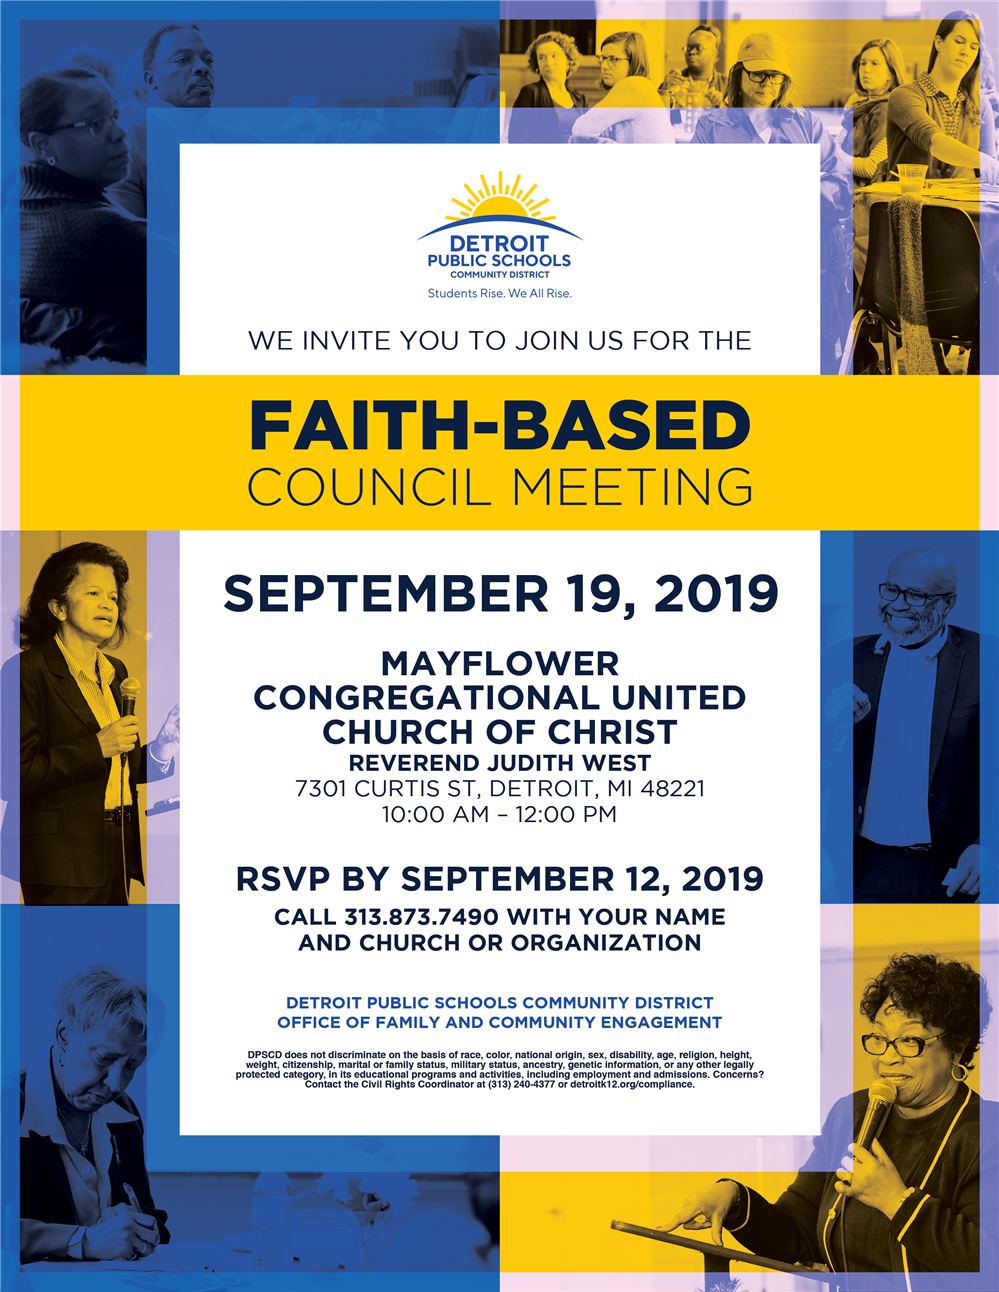 Flyer of upcoming Faith Based council meeting on September 19th at Mayflower Congregational United church of Christ. Detroit